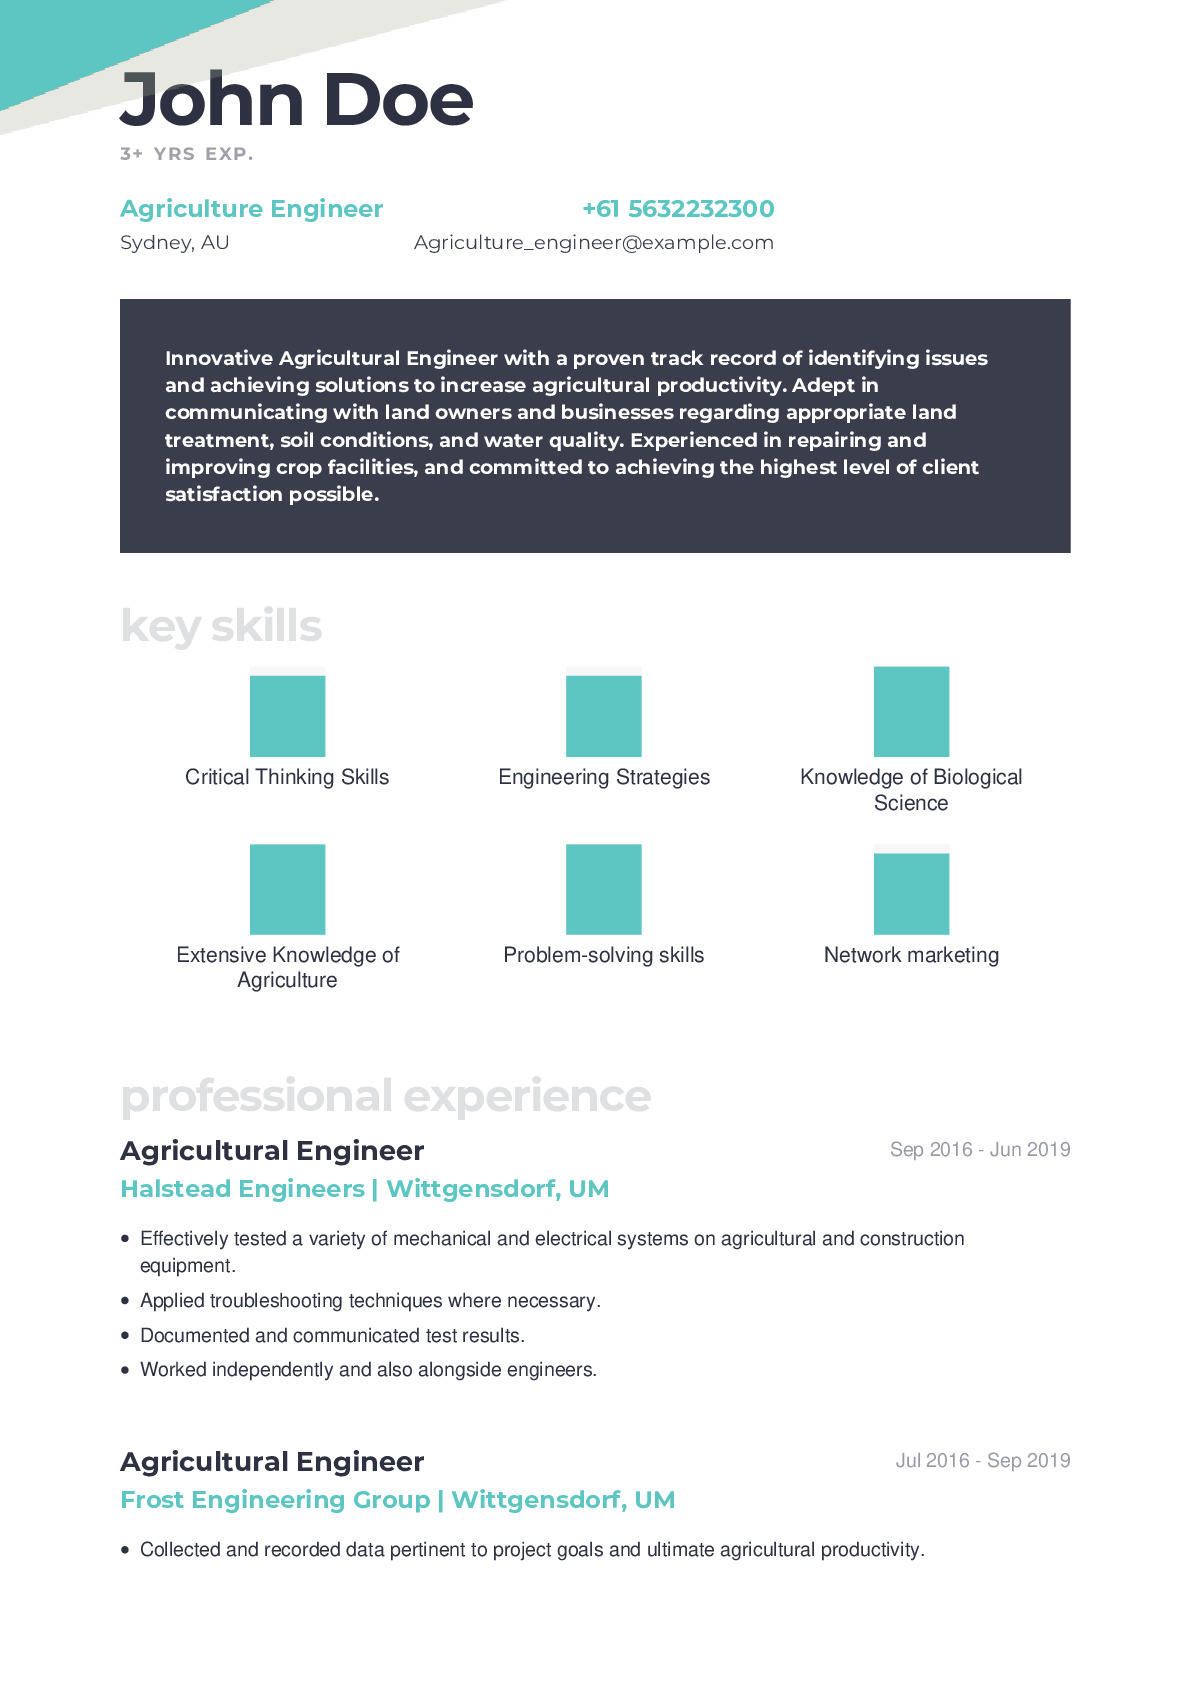 Agriculture Engineer Resume Example